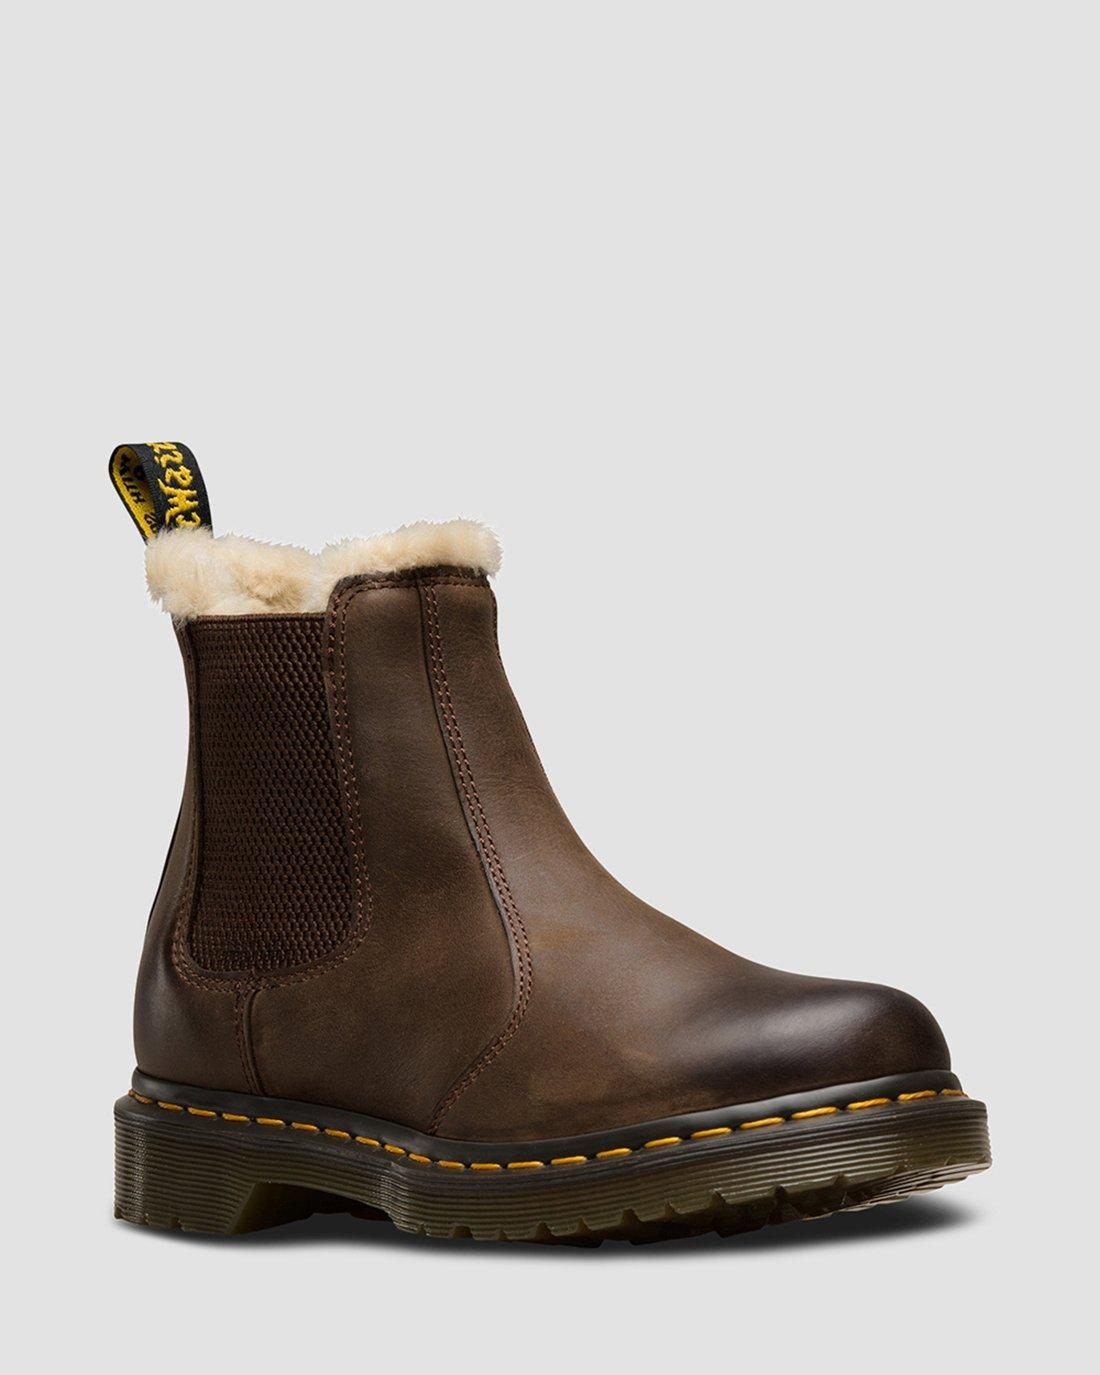 DR MARTENS 2976 Leonore Fur Lined Leather Chelsea Boots